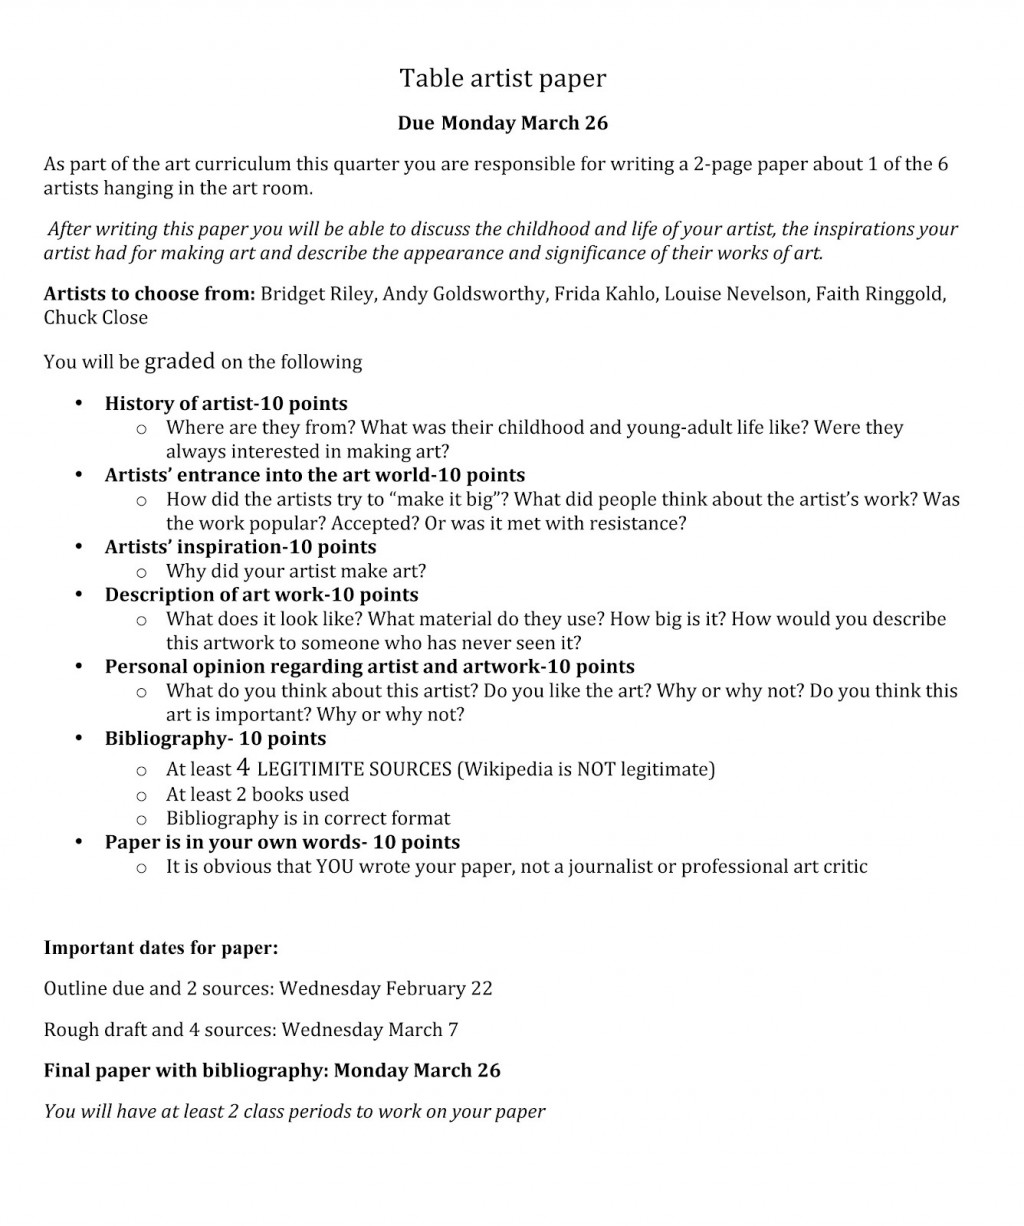 006 Good History Topics For Researchs Table20artist20paper Striking Research Papers Best Interesting Paper Us Large